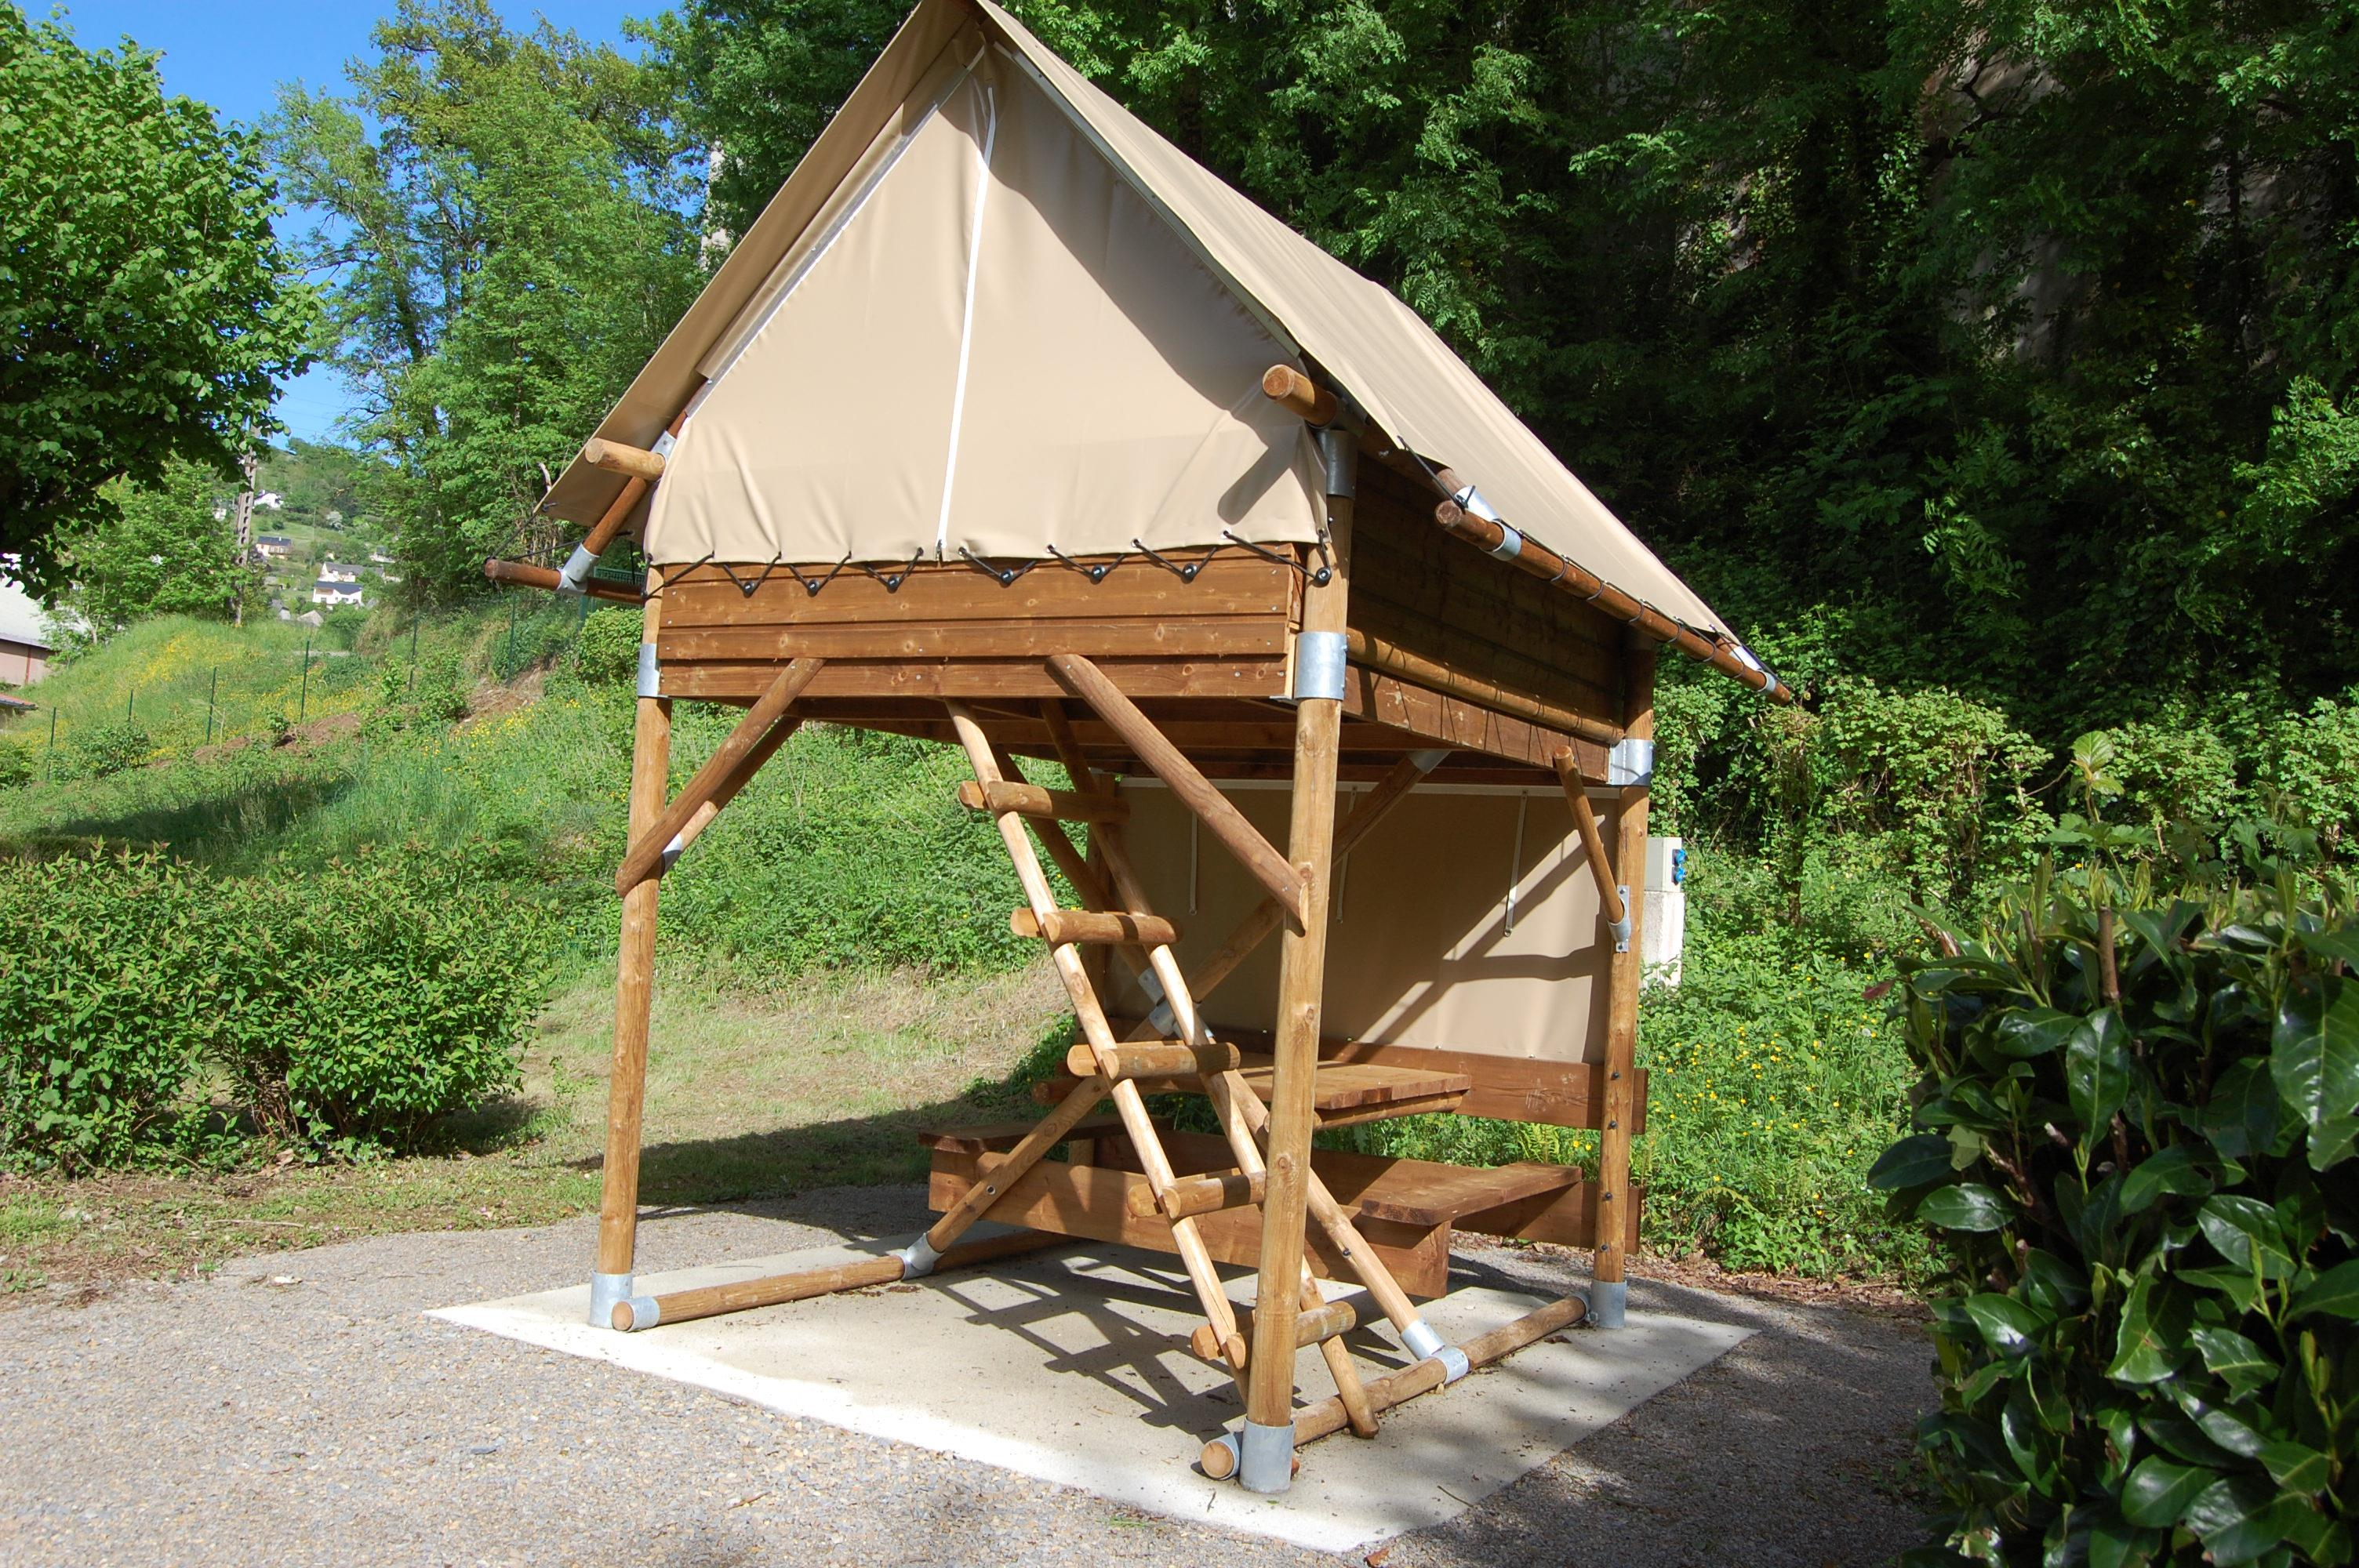 Tente Bivouac + Electricity 10A - Without Toilet Blocks